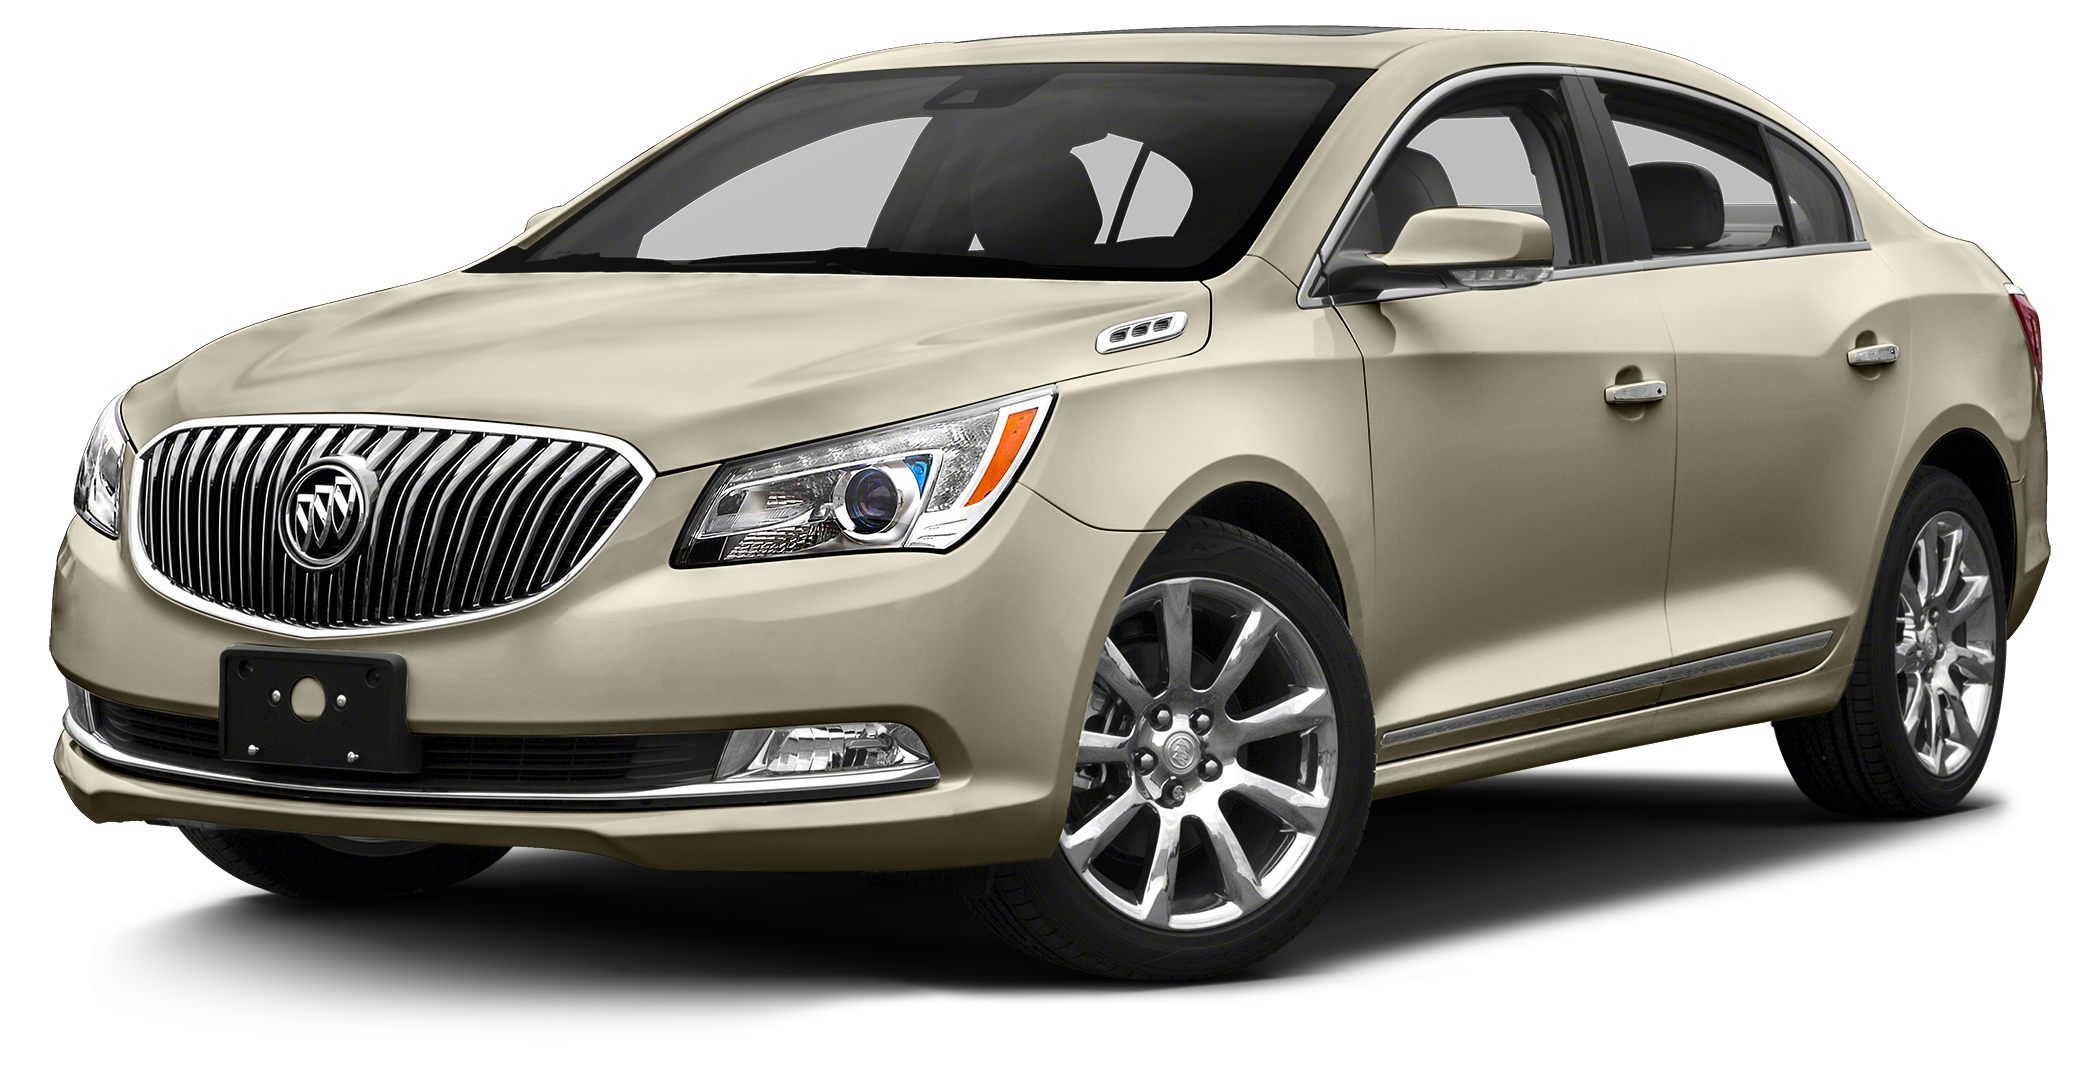 2015 Buick LaCrosse Leather Recent Arrival Priced below KBB Fair Purchase Price BUICK CERTIFIE